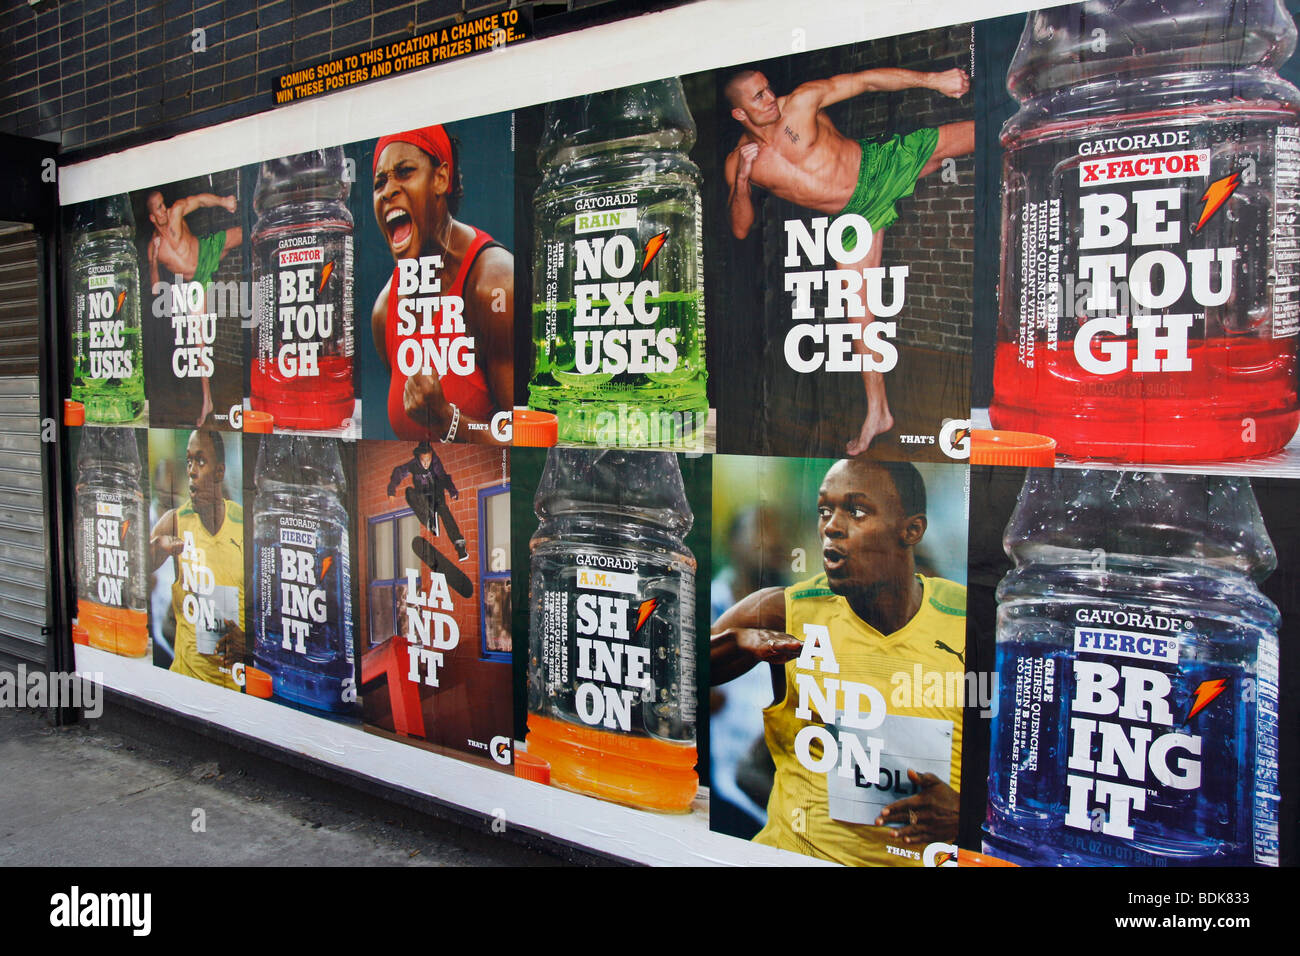 Gatorade billboard conveying strength and confidence. - Stock Image